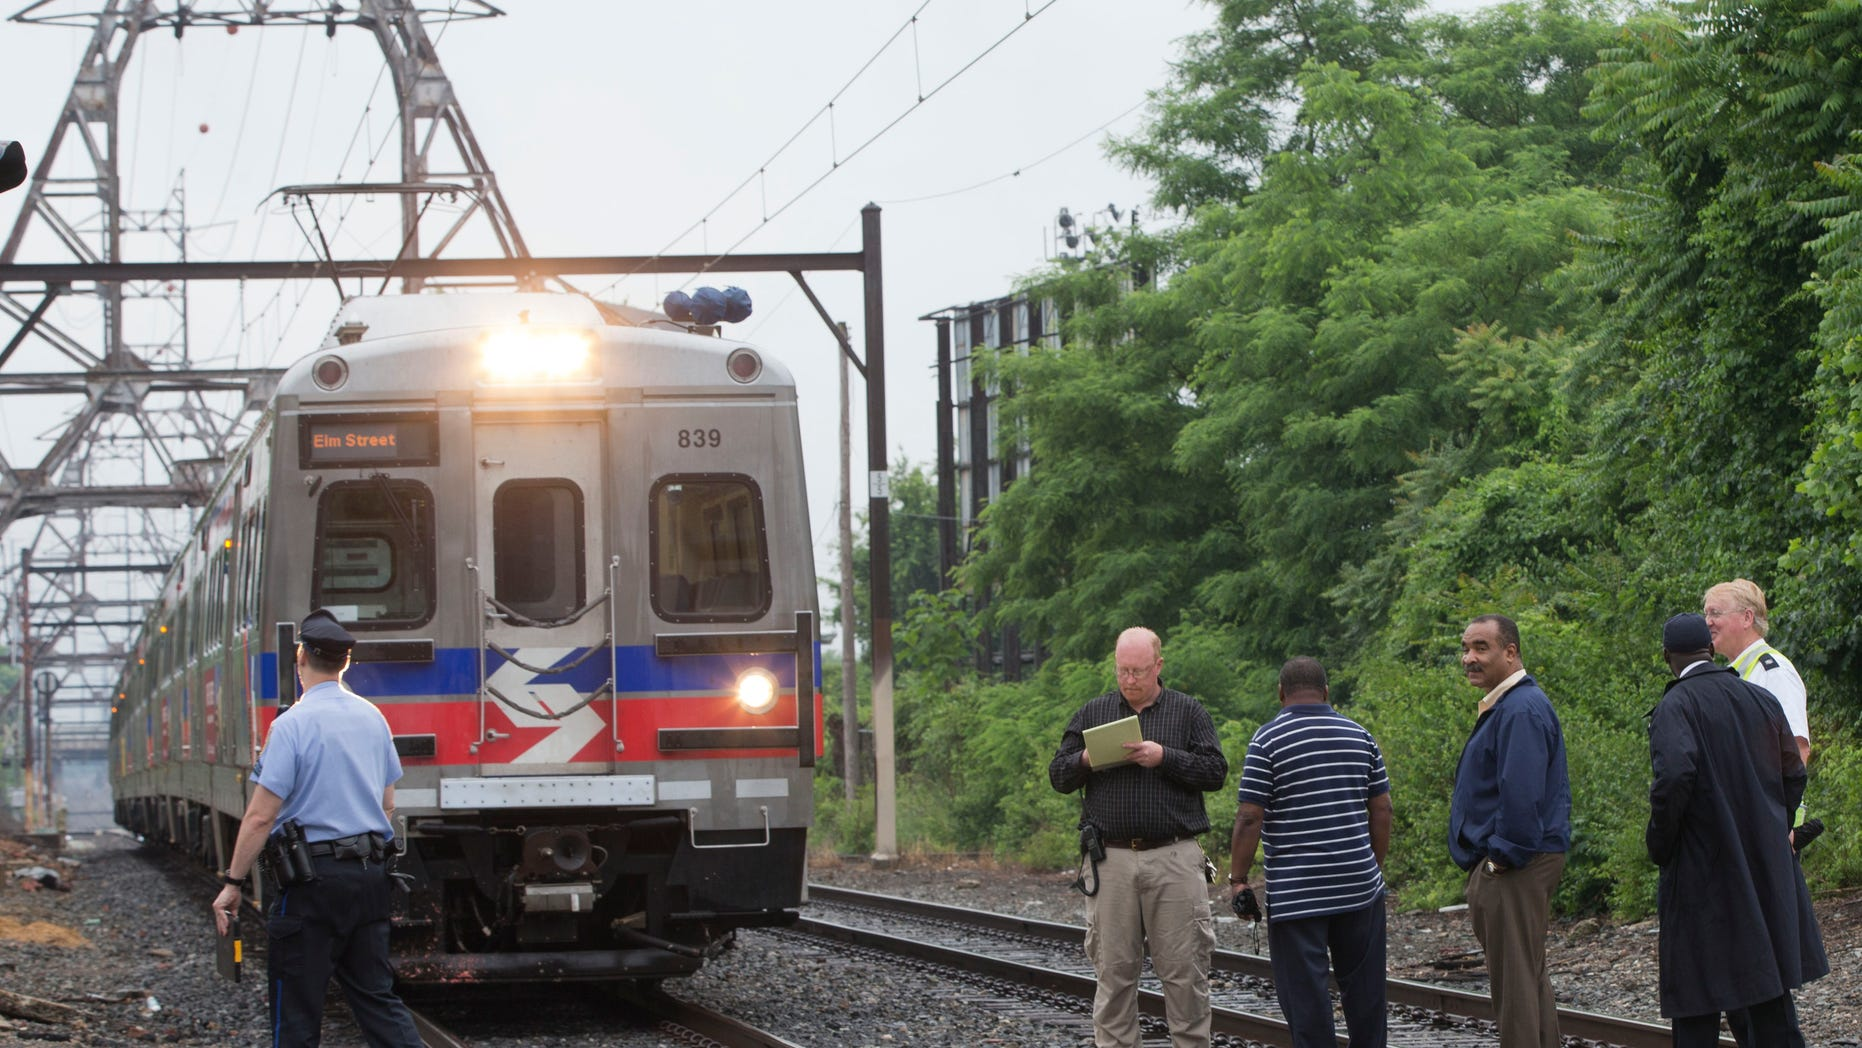 June 9, 2014: Officials stand near an idle Southeastern Pennsylvania Transportation Authority train.